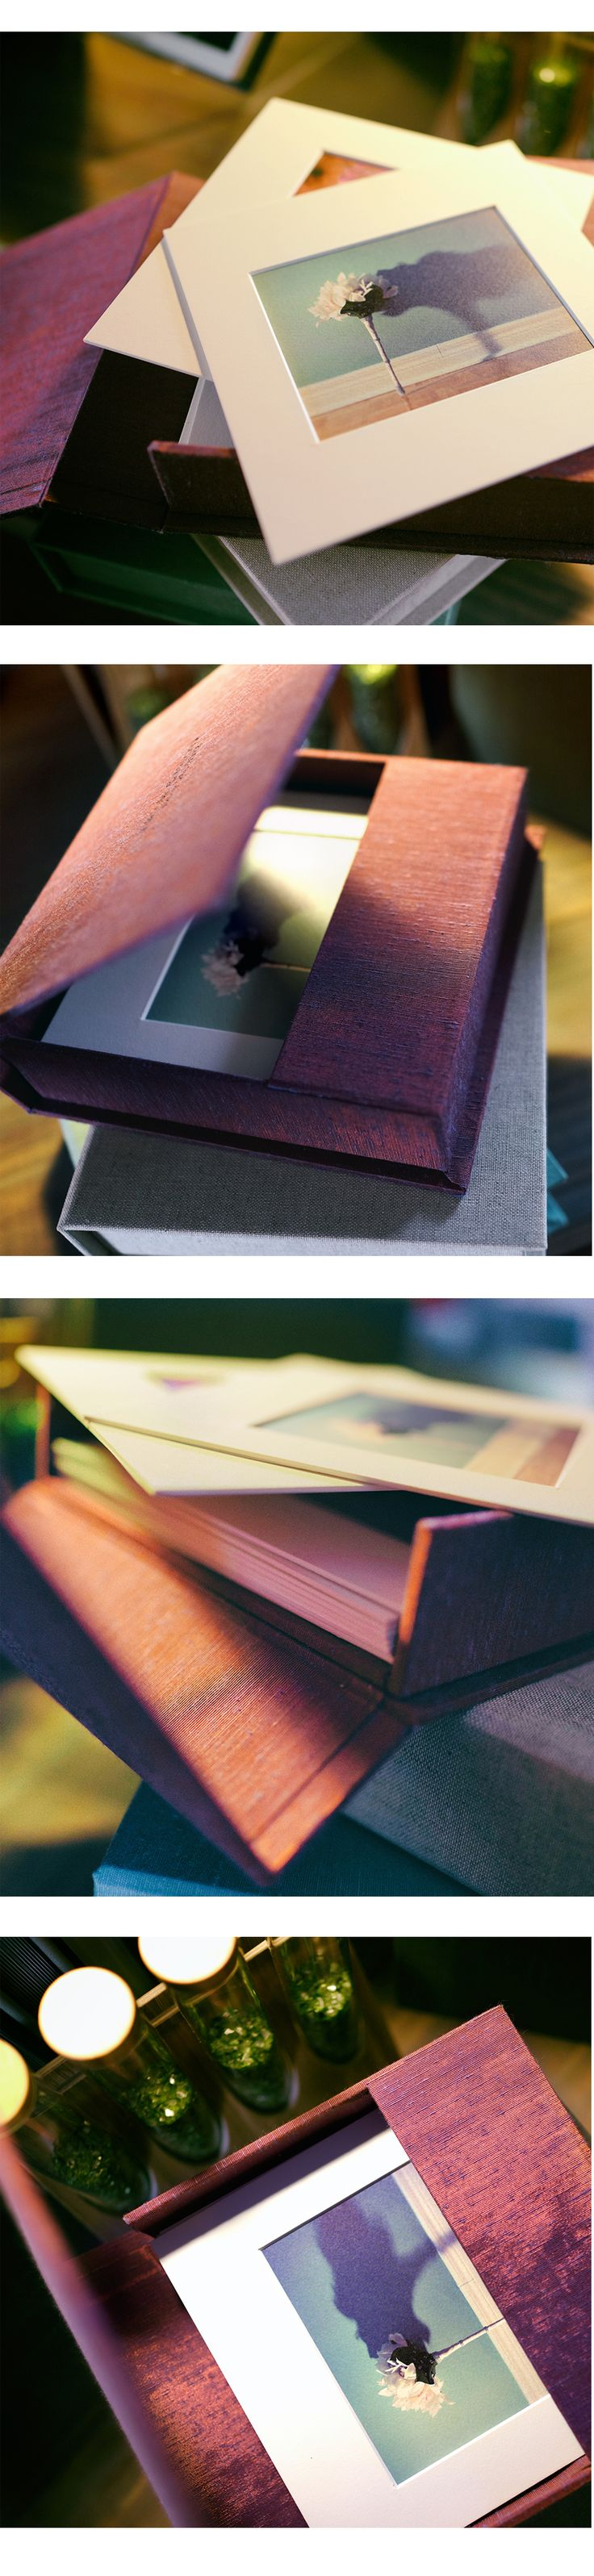 Who would't want one of these beautiful Matted Photo Boxes. <3